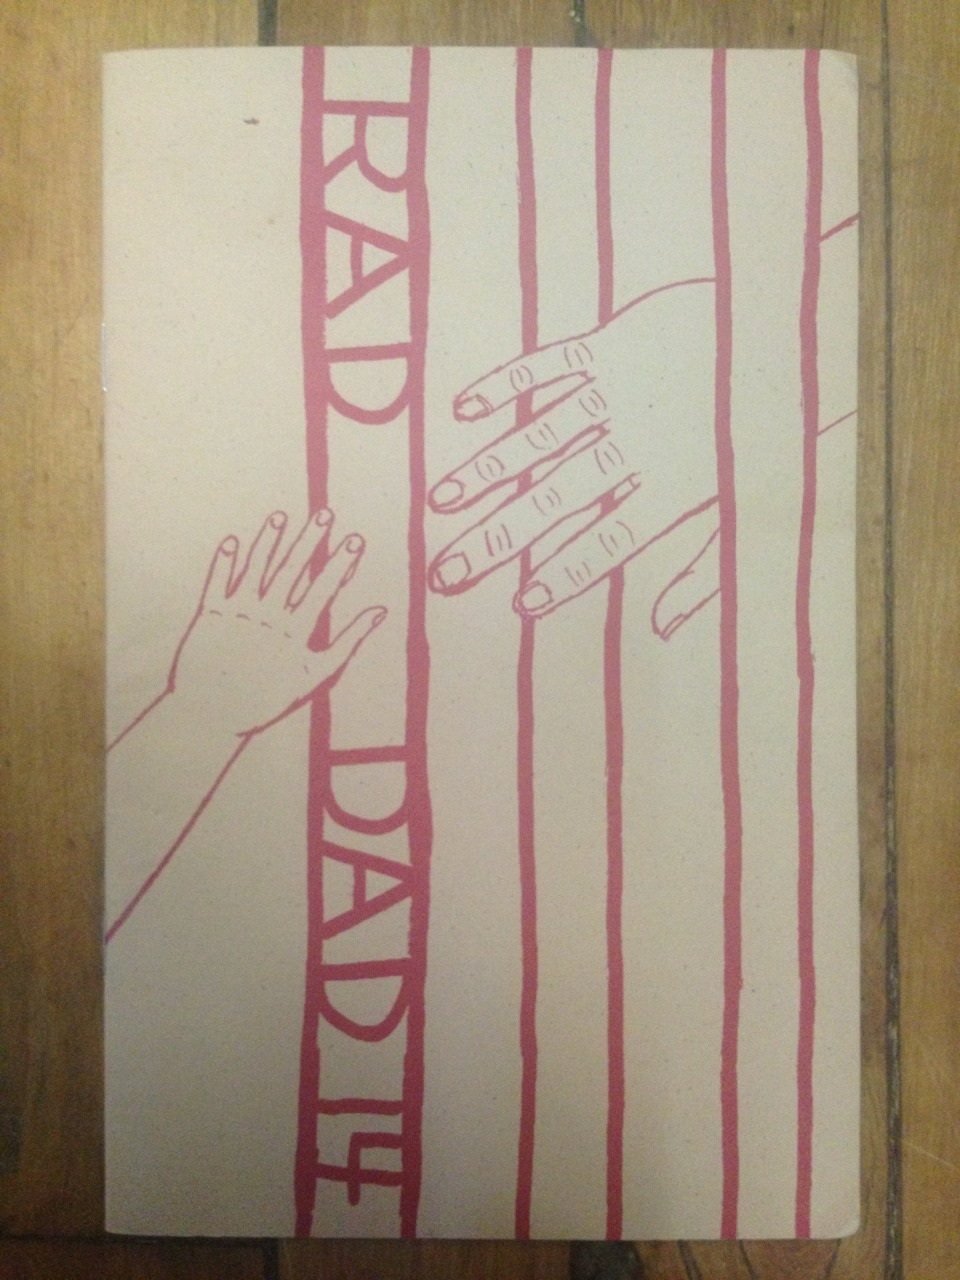 zine of the day—Rad Dad!